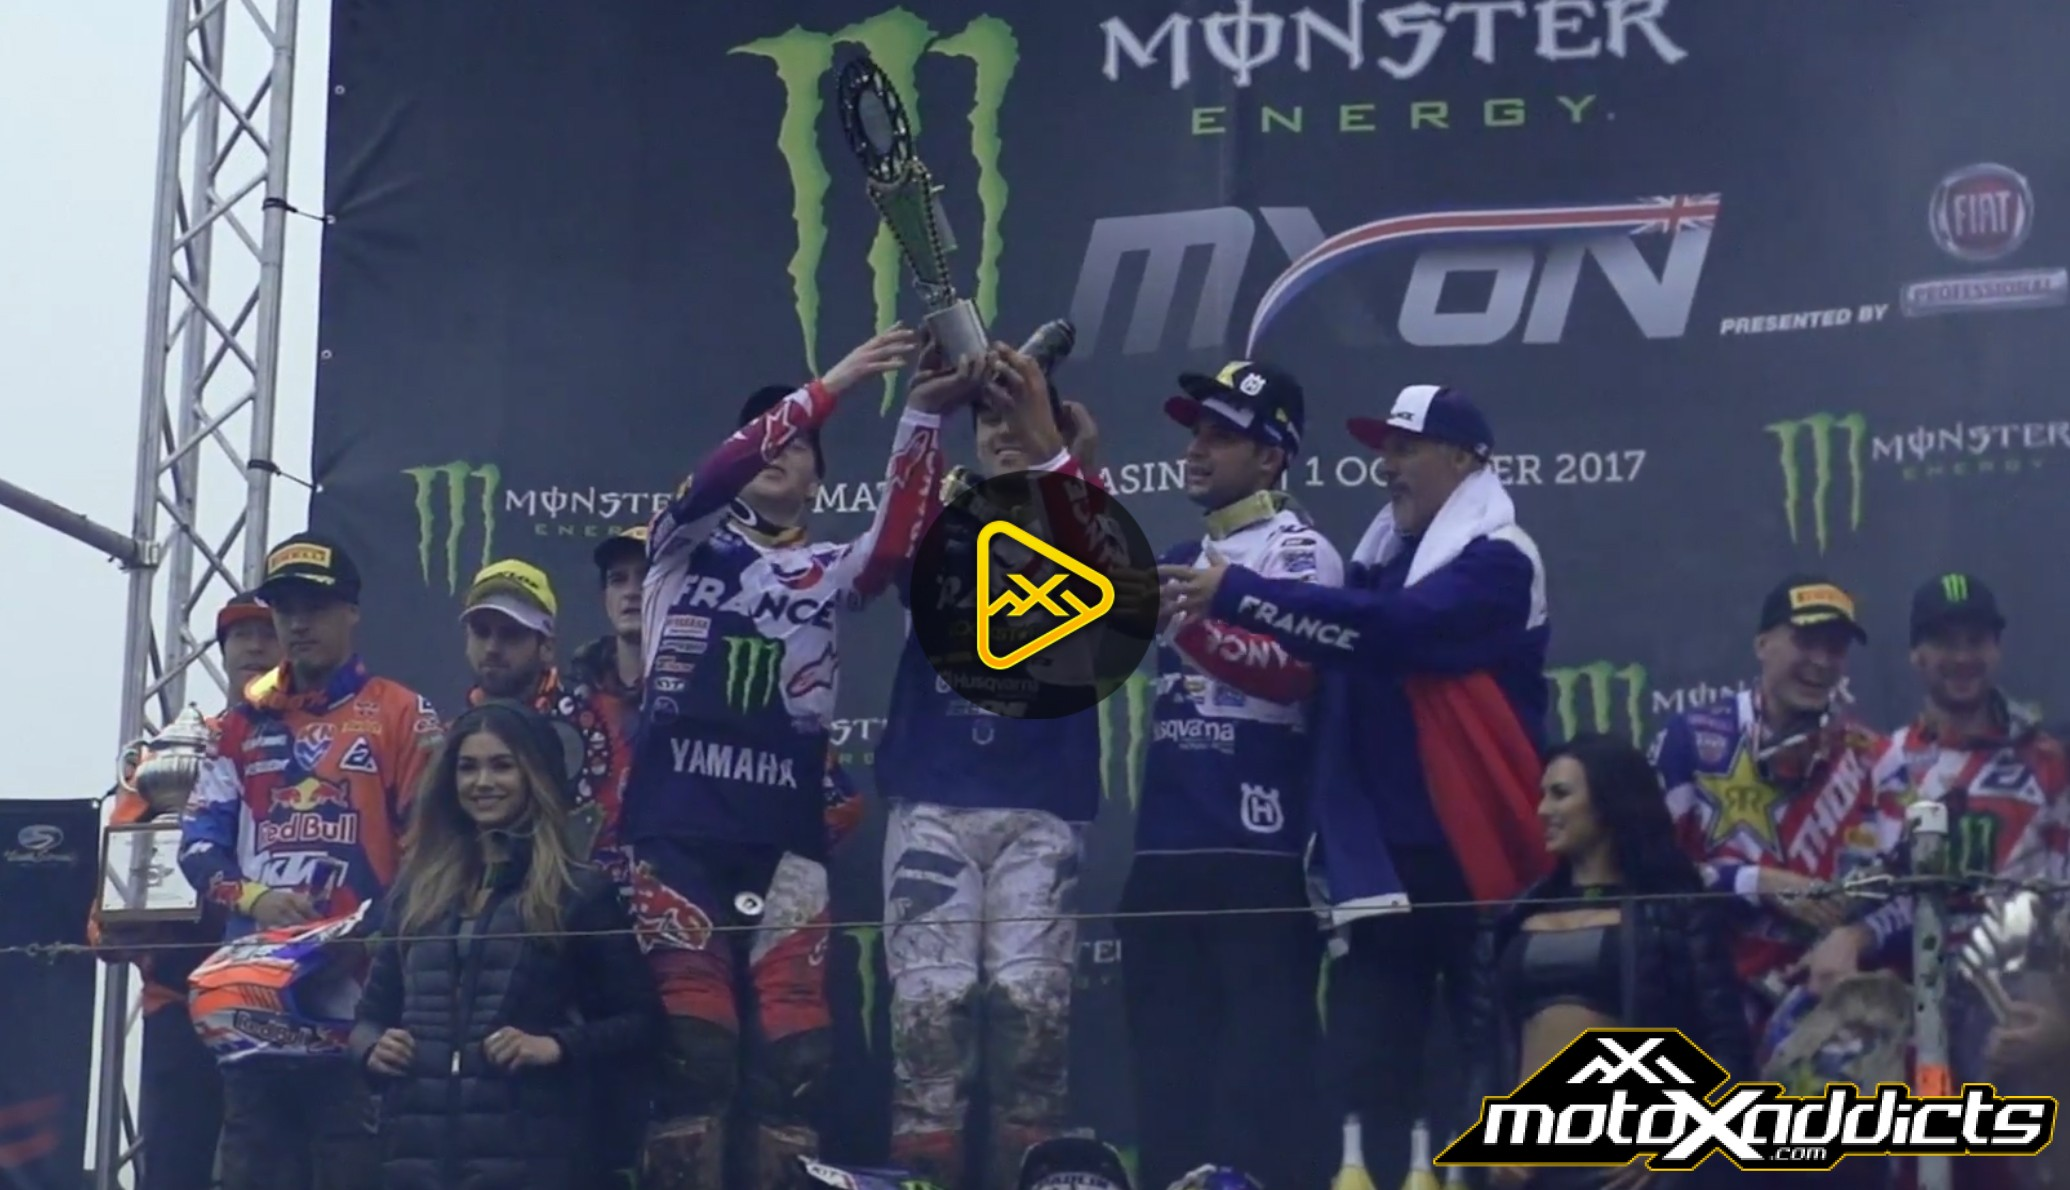 Relive the 2017 Motocross of Nations